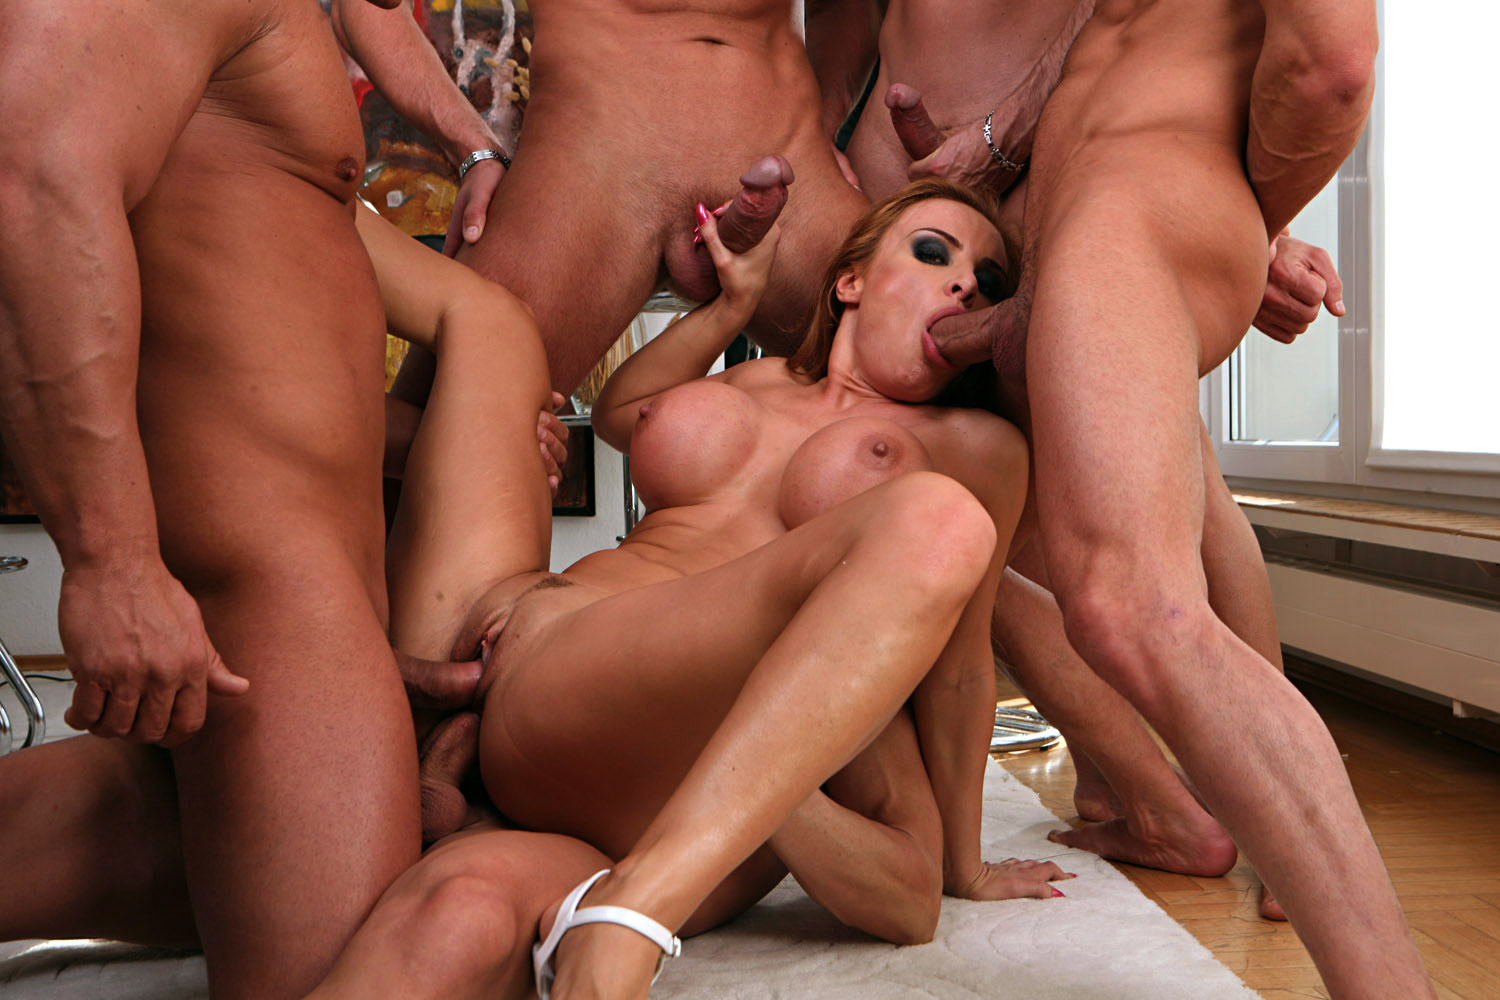 gangbang party berlin videos of anal sex